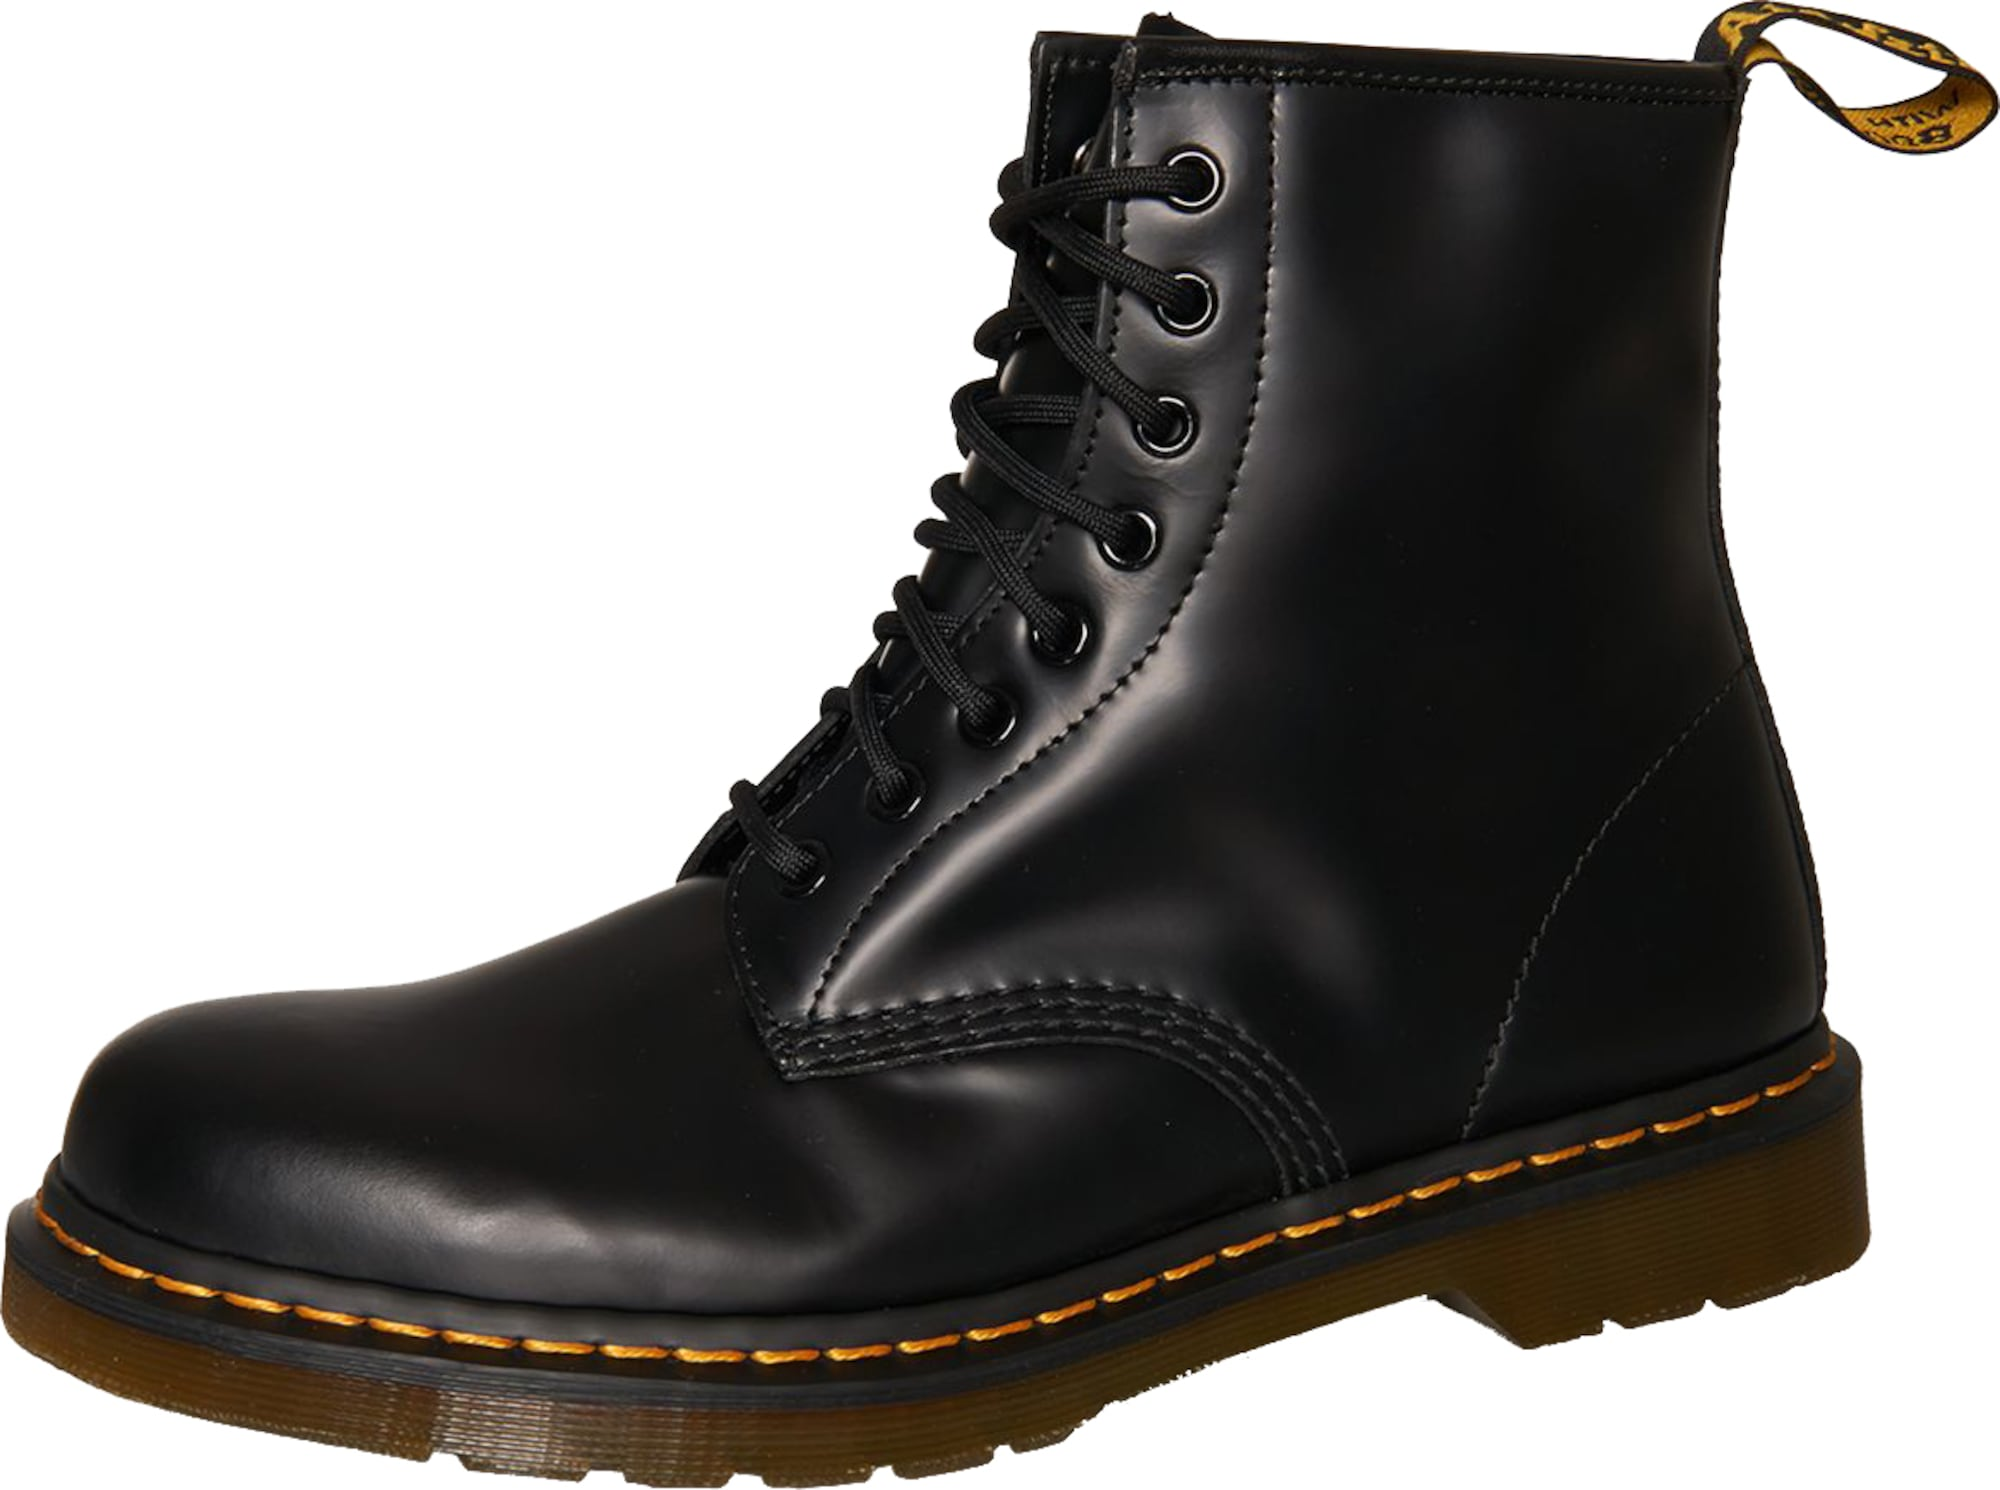 dr martens lederboots 39 1460 dmc 8 eye 39 in schwarz about you. Black Bedroom Furniture Sets. Home Design Ideas